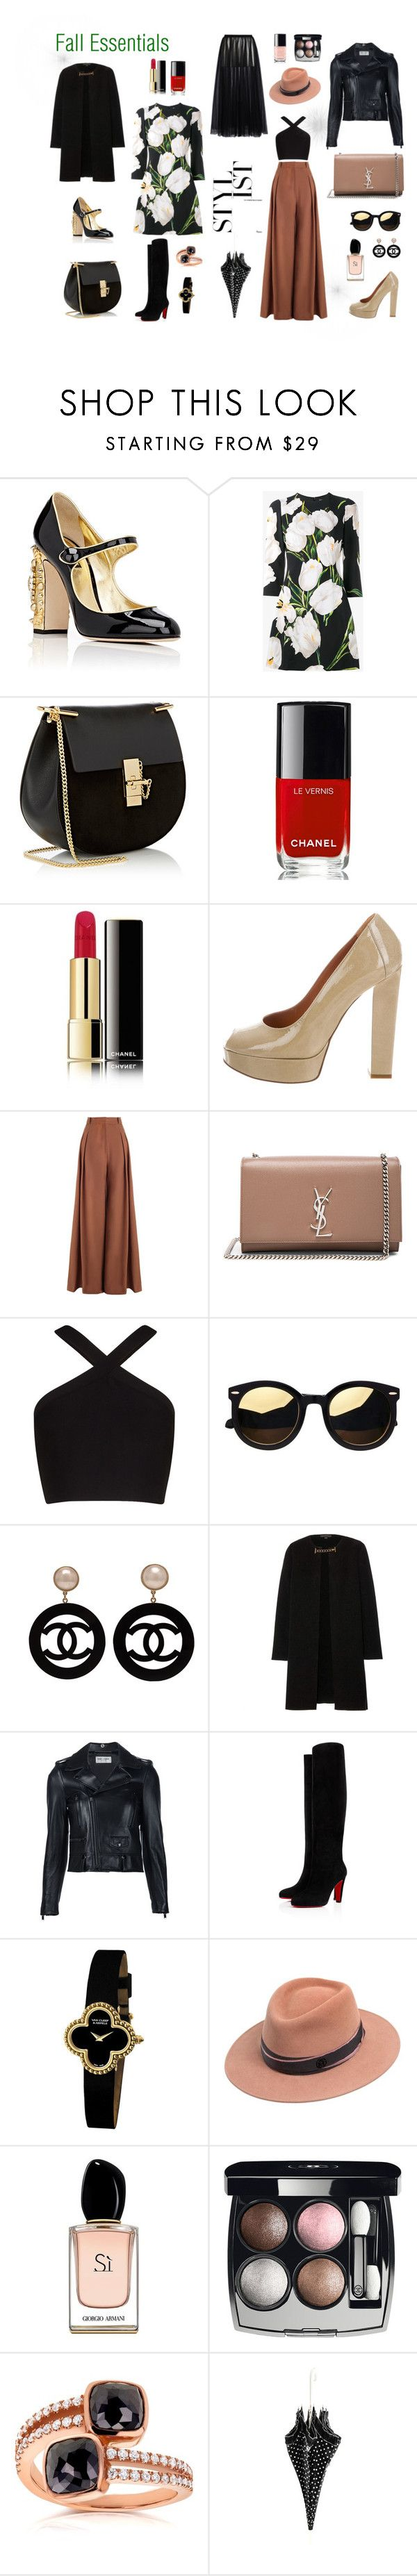 """Fall Essential '16"" by dpintainha on Polyvore featuring Dolce&Gabbana, Chloé, Chanel, Lanvin, Zimmermann, Yves Saint Laurent, BCBGMAXAZRIA, Burberry, Van Cleef & Arpels and Maison Michel"